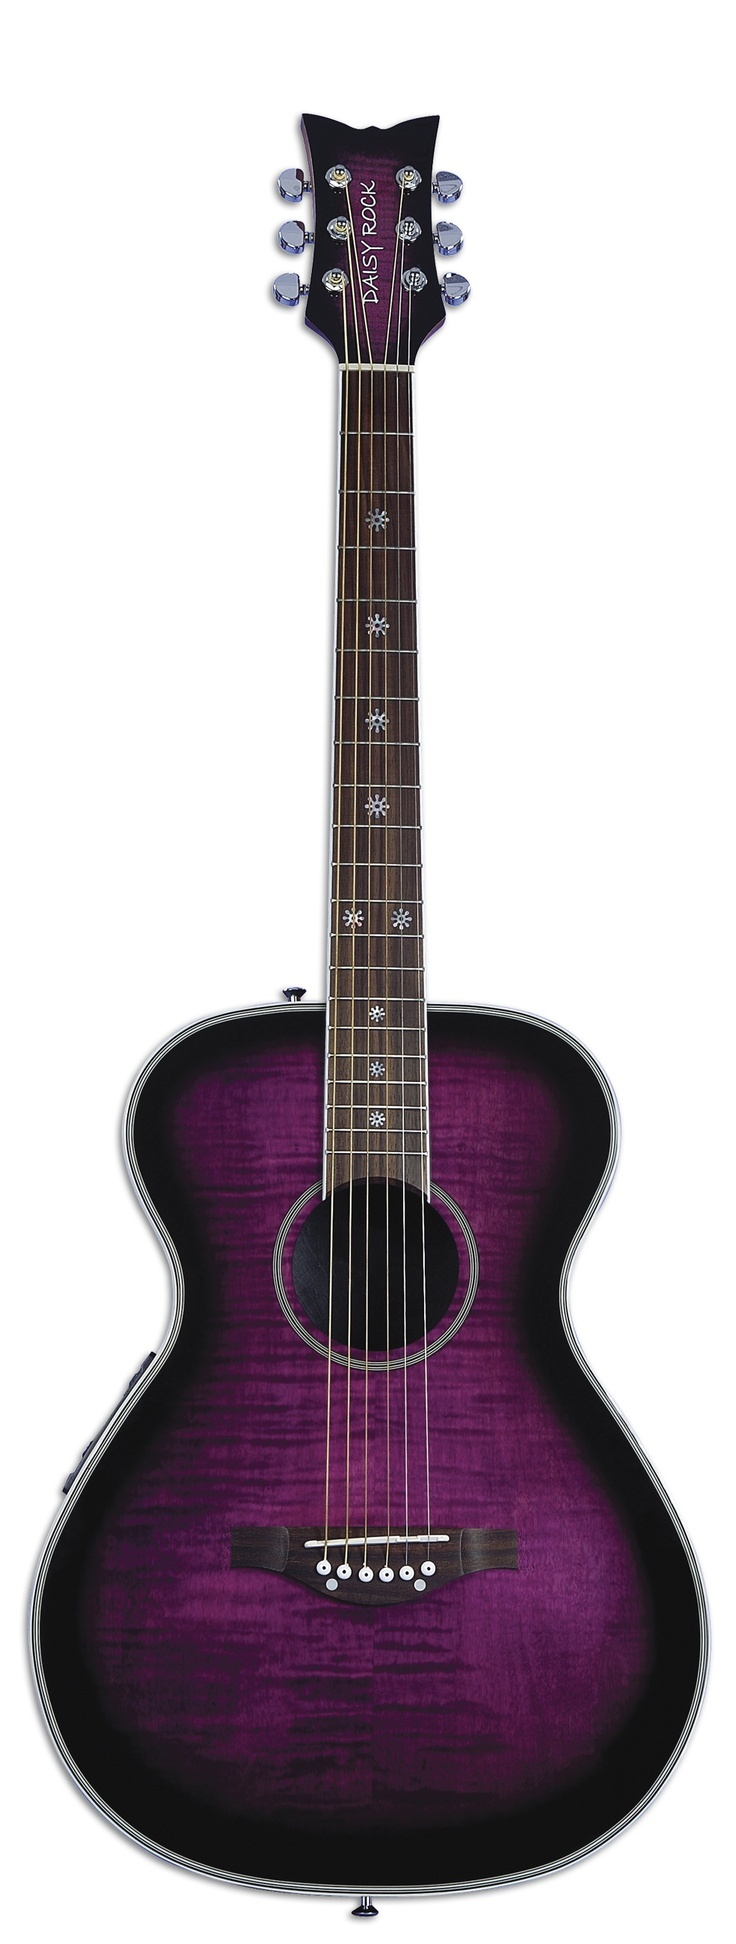 #Mikyajy @Mikyajy MakeUp MakeUp  purple guitar